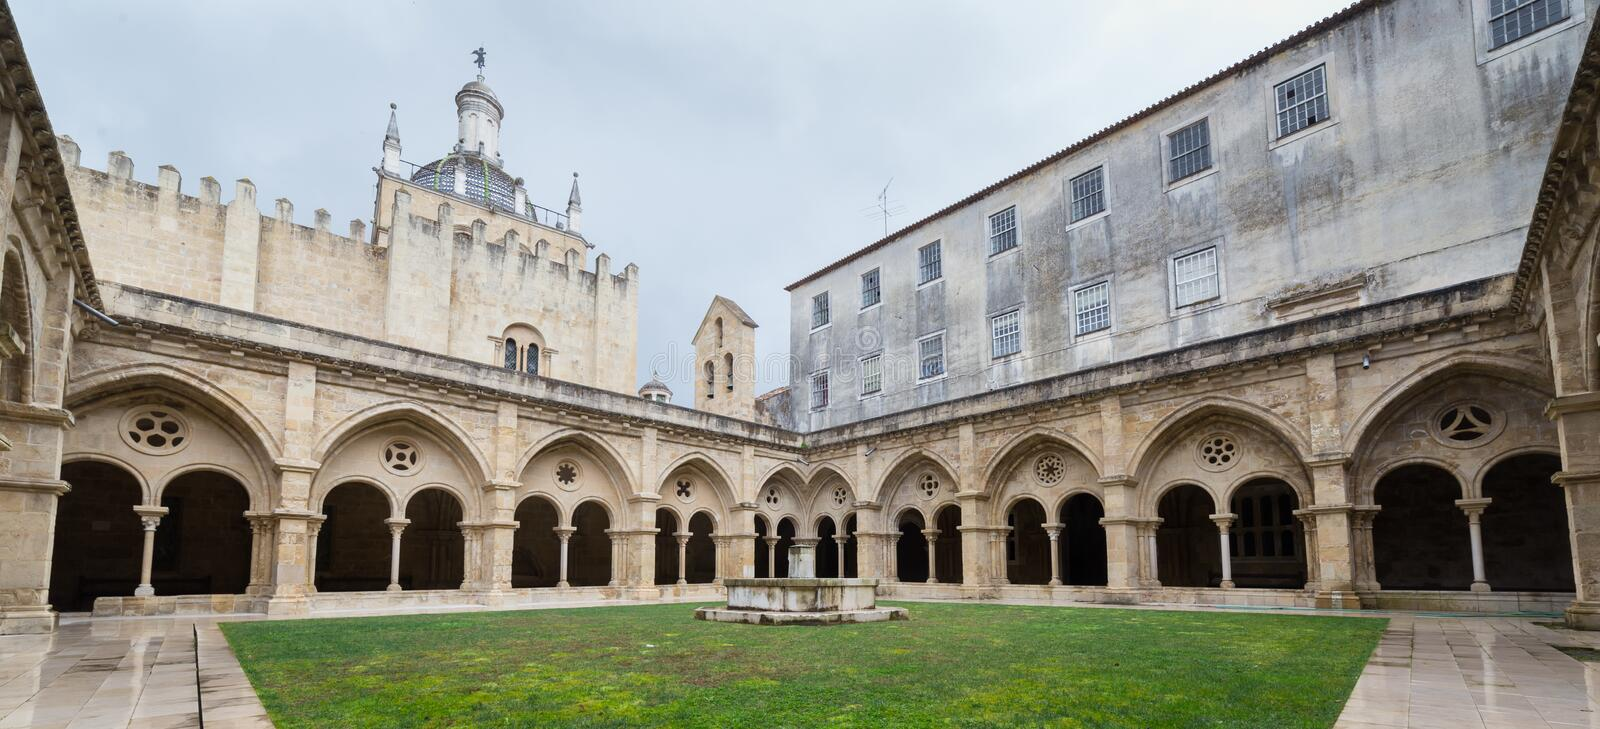 Old Cathedral Se Velha in Coimbra, Portugal. COIMBRA, PORTUGAL - FEBRUARY 28, 2017: Gothic cloister of the Old Cathedral Se Velha in Portuguese in Coimbra royalty free stock images